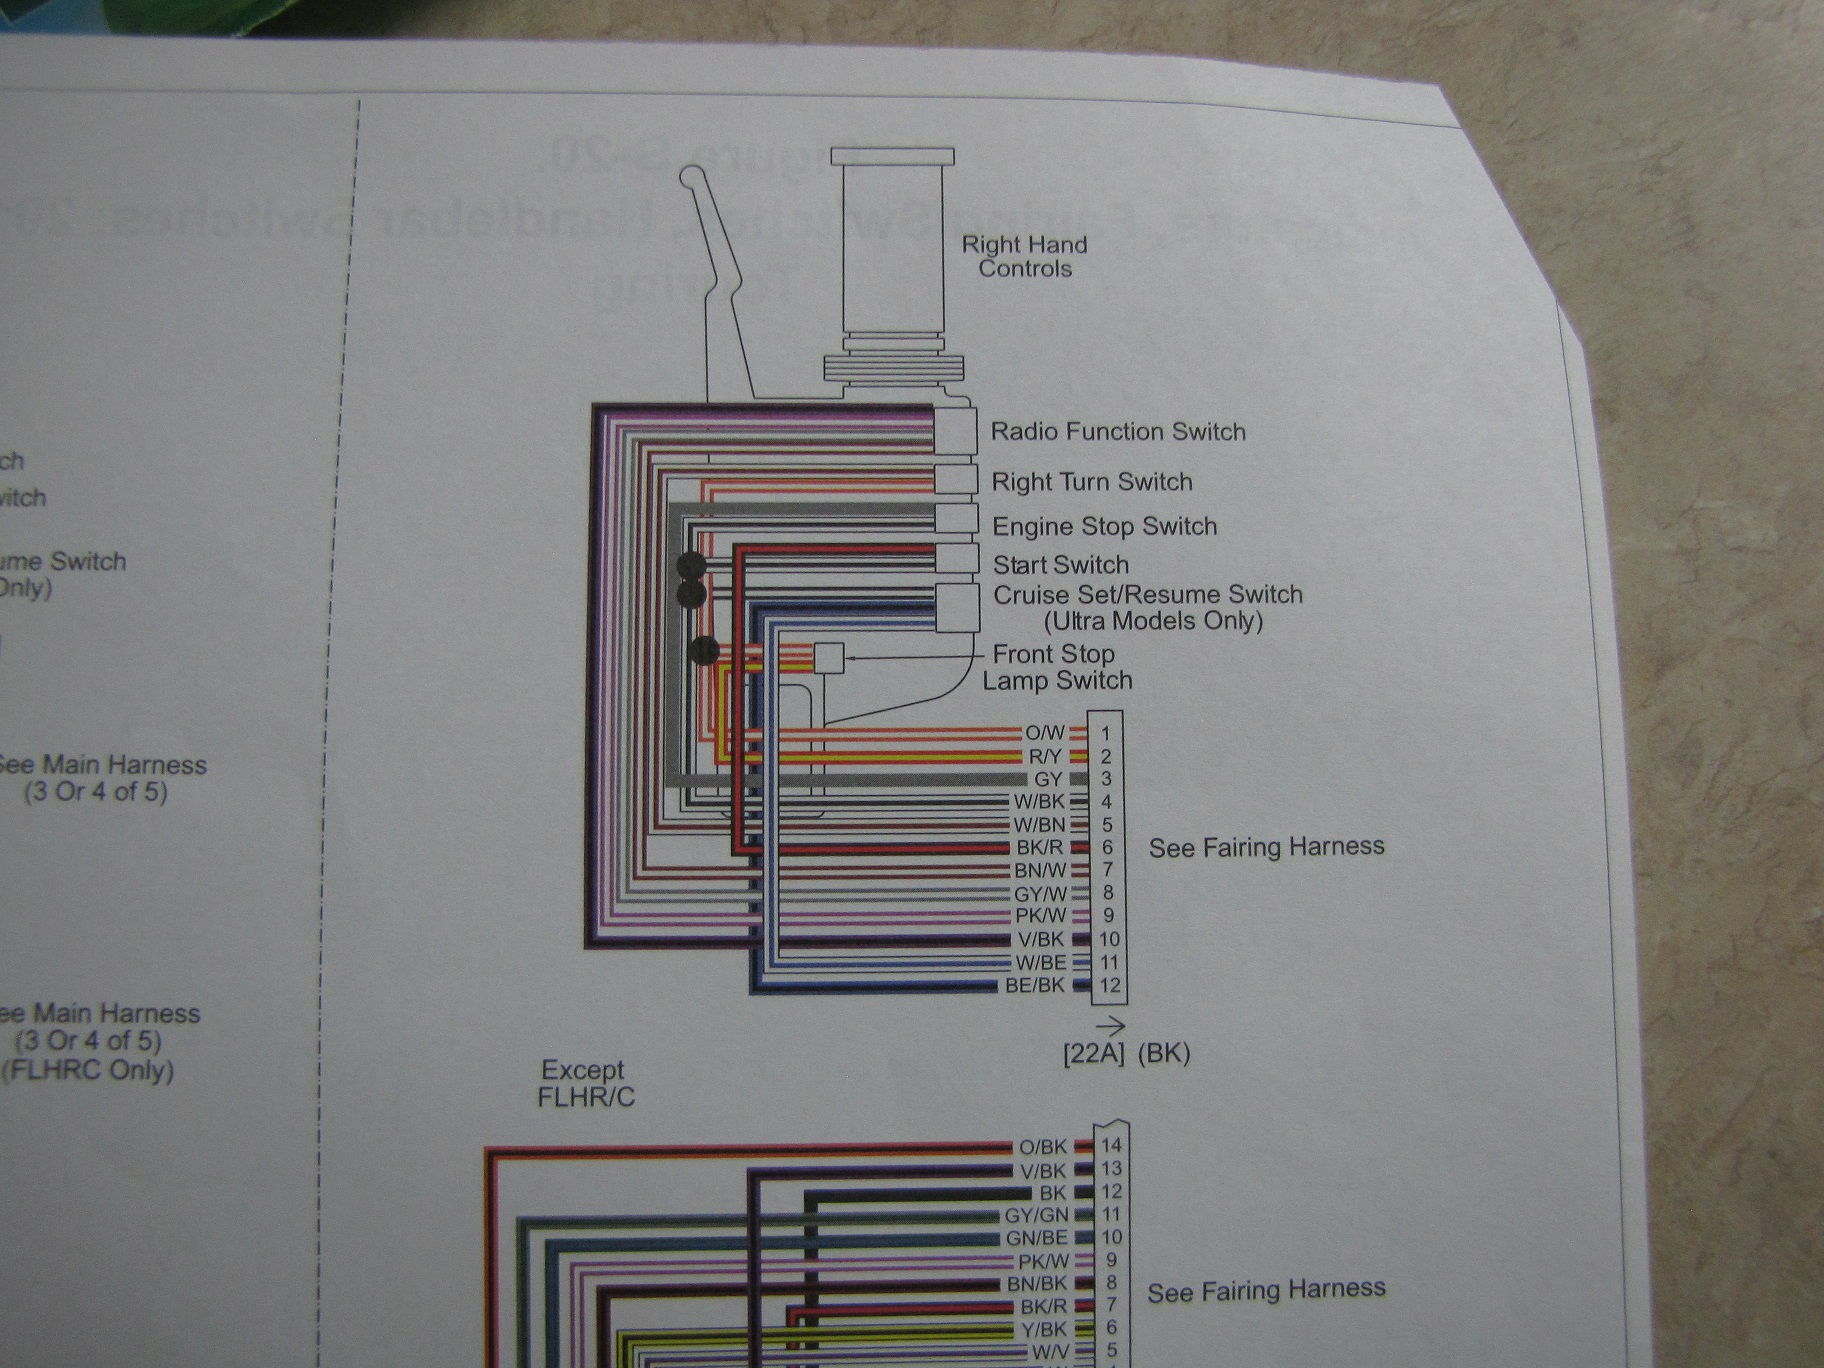 Wiring Diagram 2013 Street Glide - Harley Davidson Forums